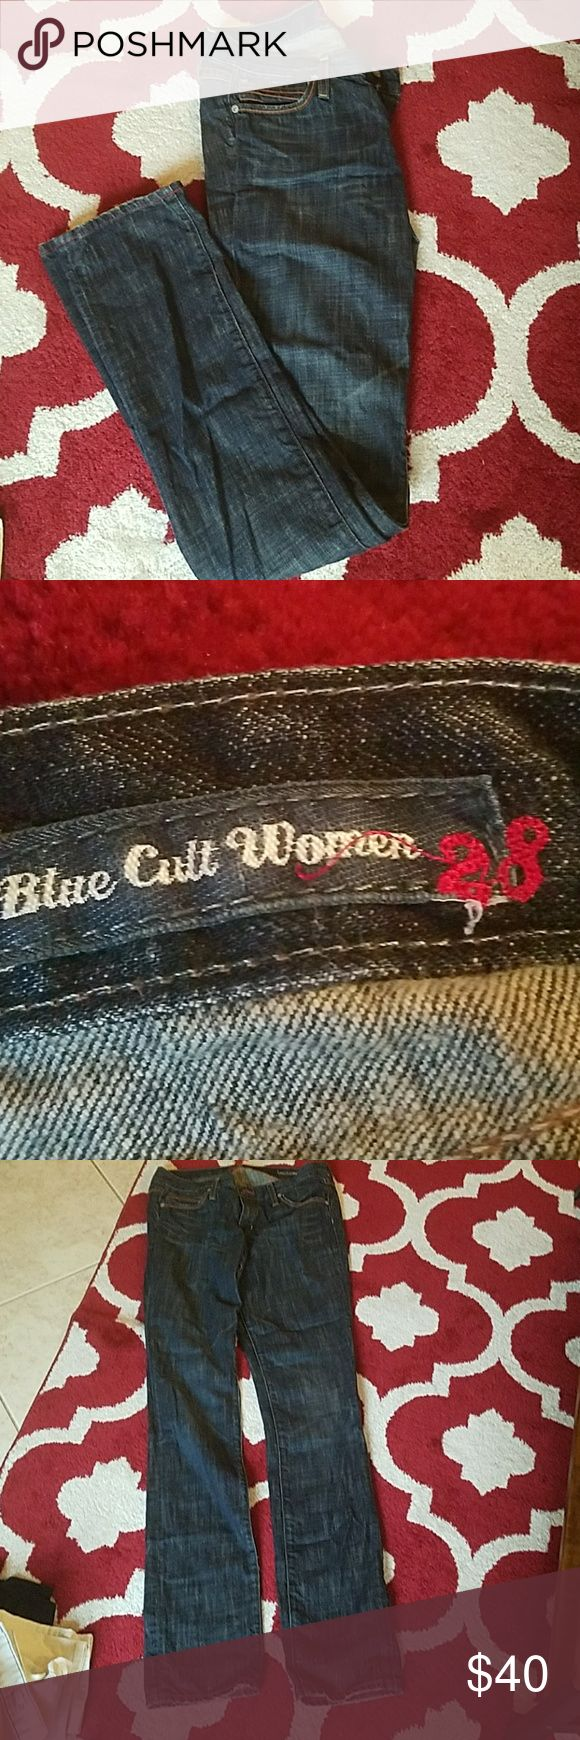 Blue cult denim - size 28 - extra long slouch jean Authentic blue cult denim very long.  35 inch inseam meant for a slouchy high heel look.  Perfect condition. Blue cult denim  Jeans Straight Leg